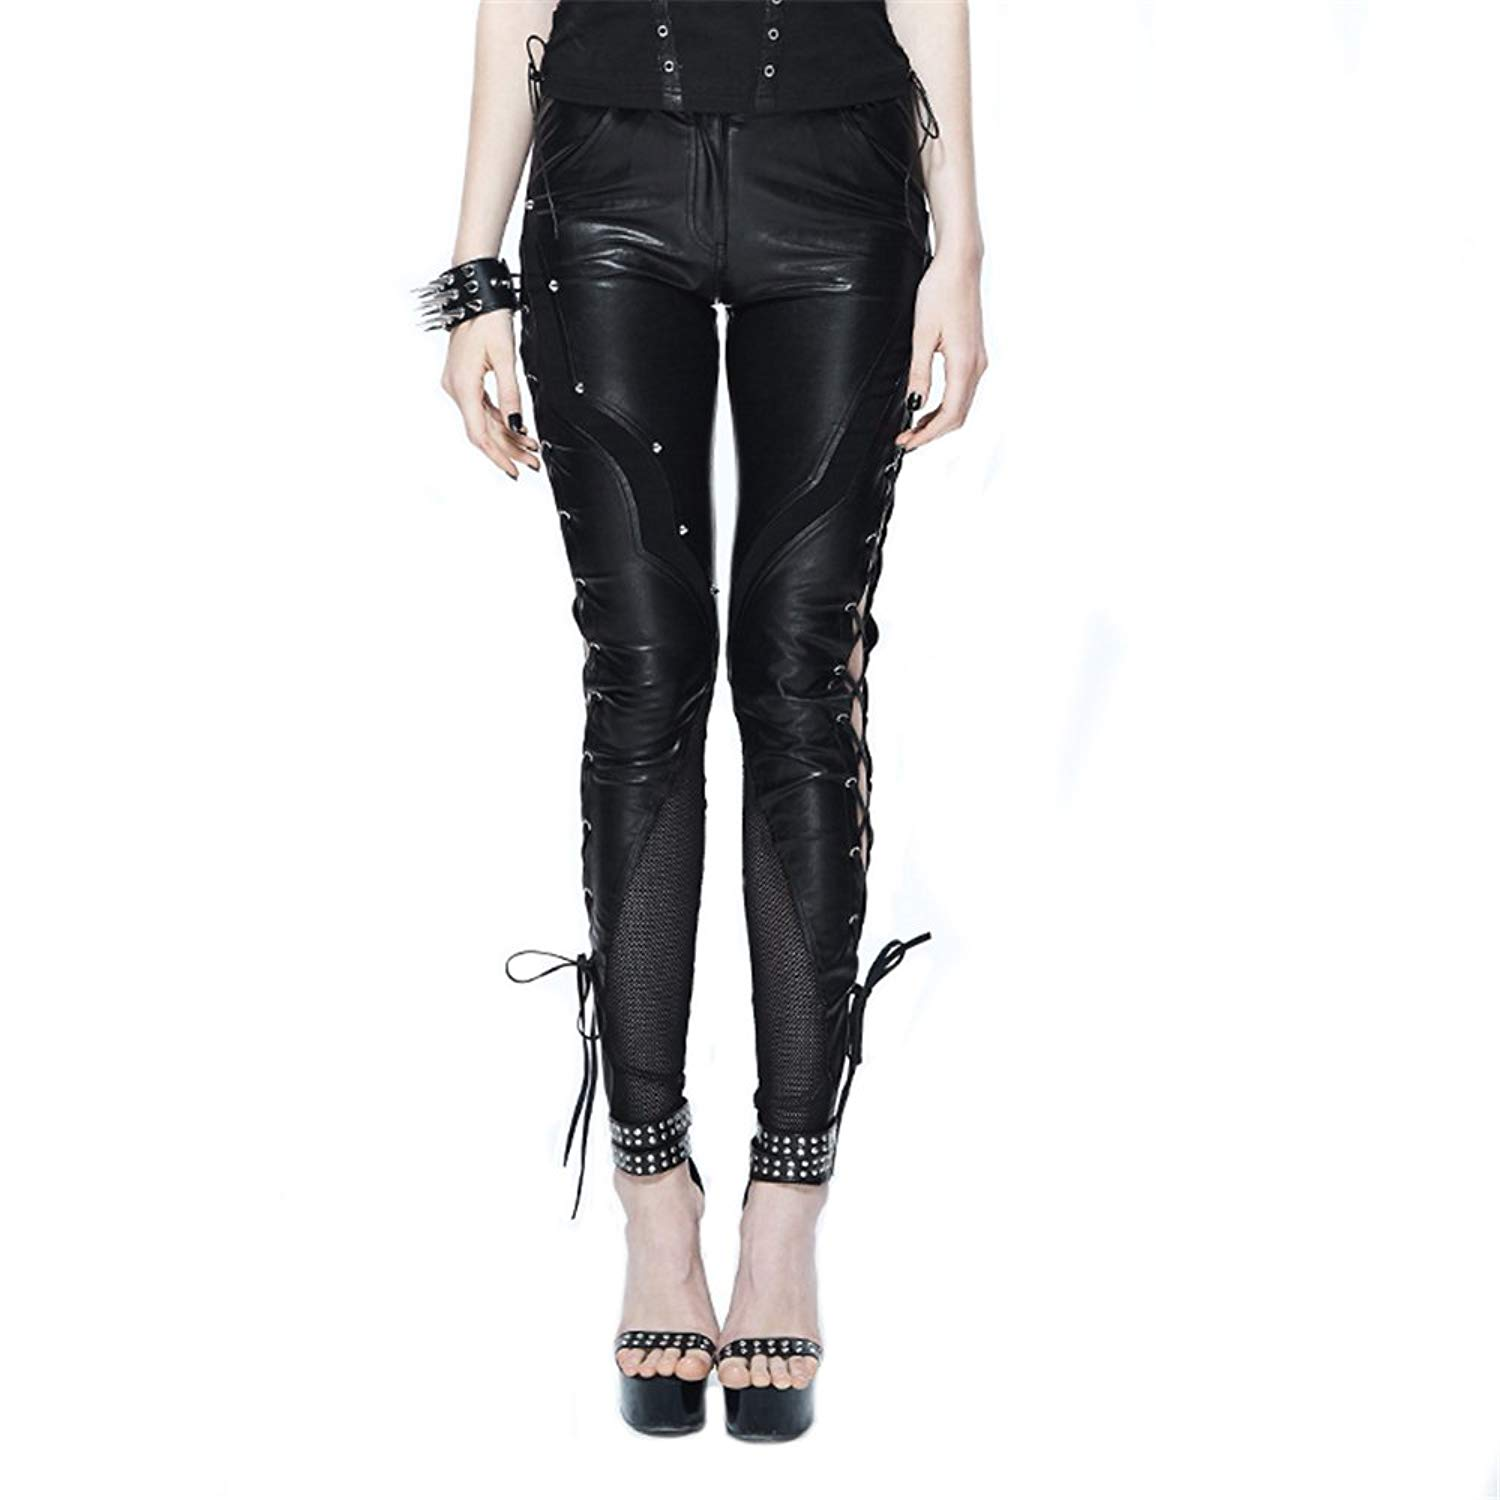 dde8e0179989 Get Quotations · Punk PU Leather Pants for Women Sexy Tight Stretchy Rider  Leggings Motorcycle Tight Pants